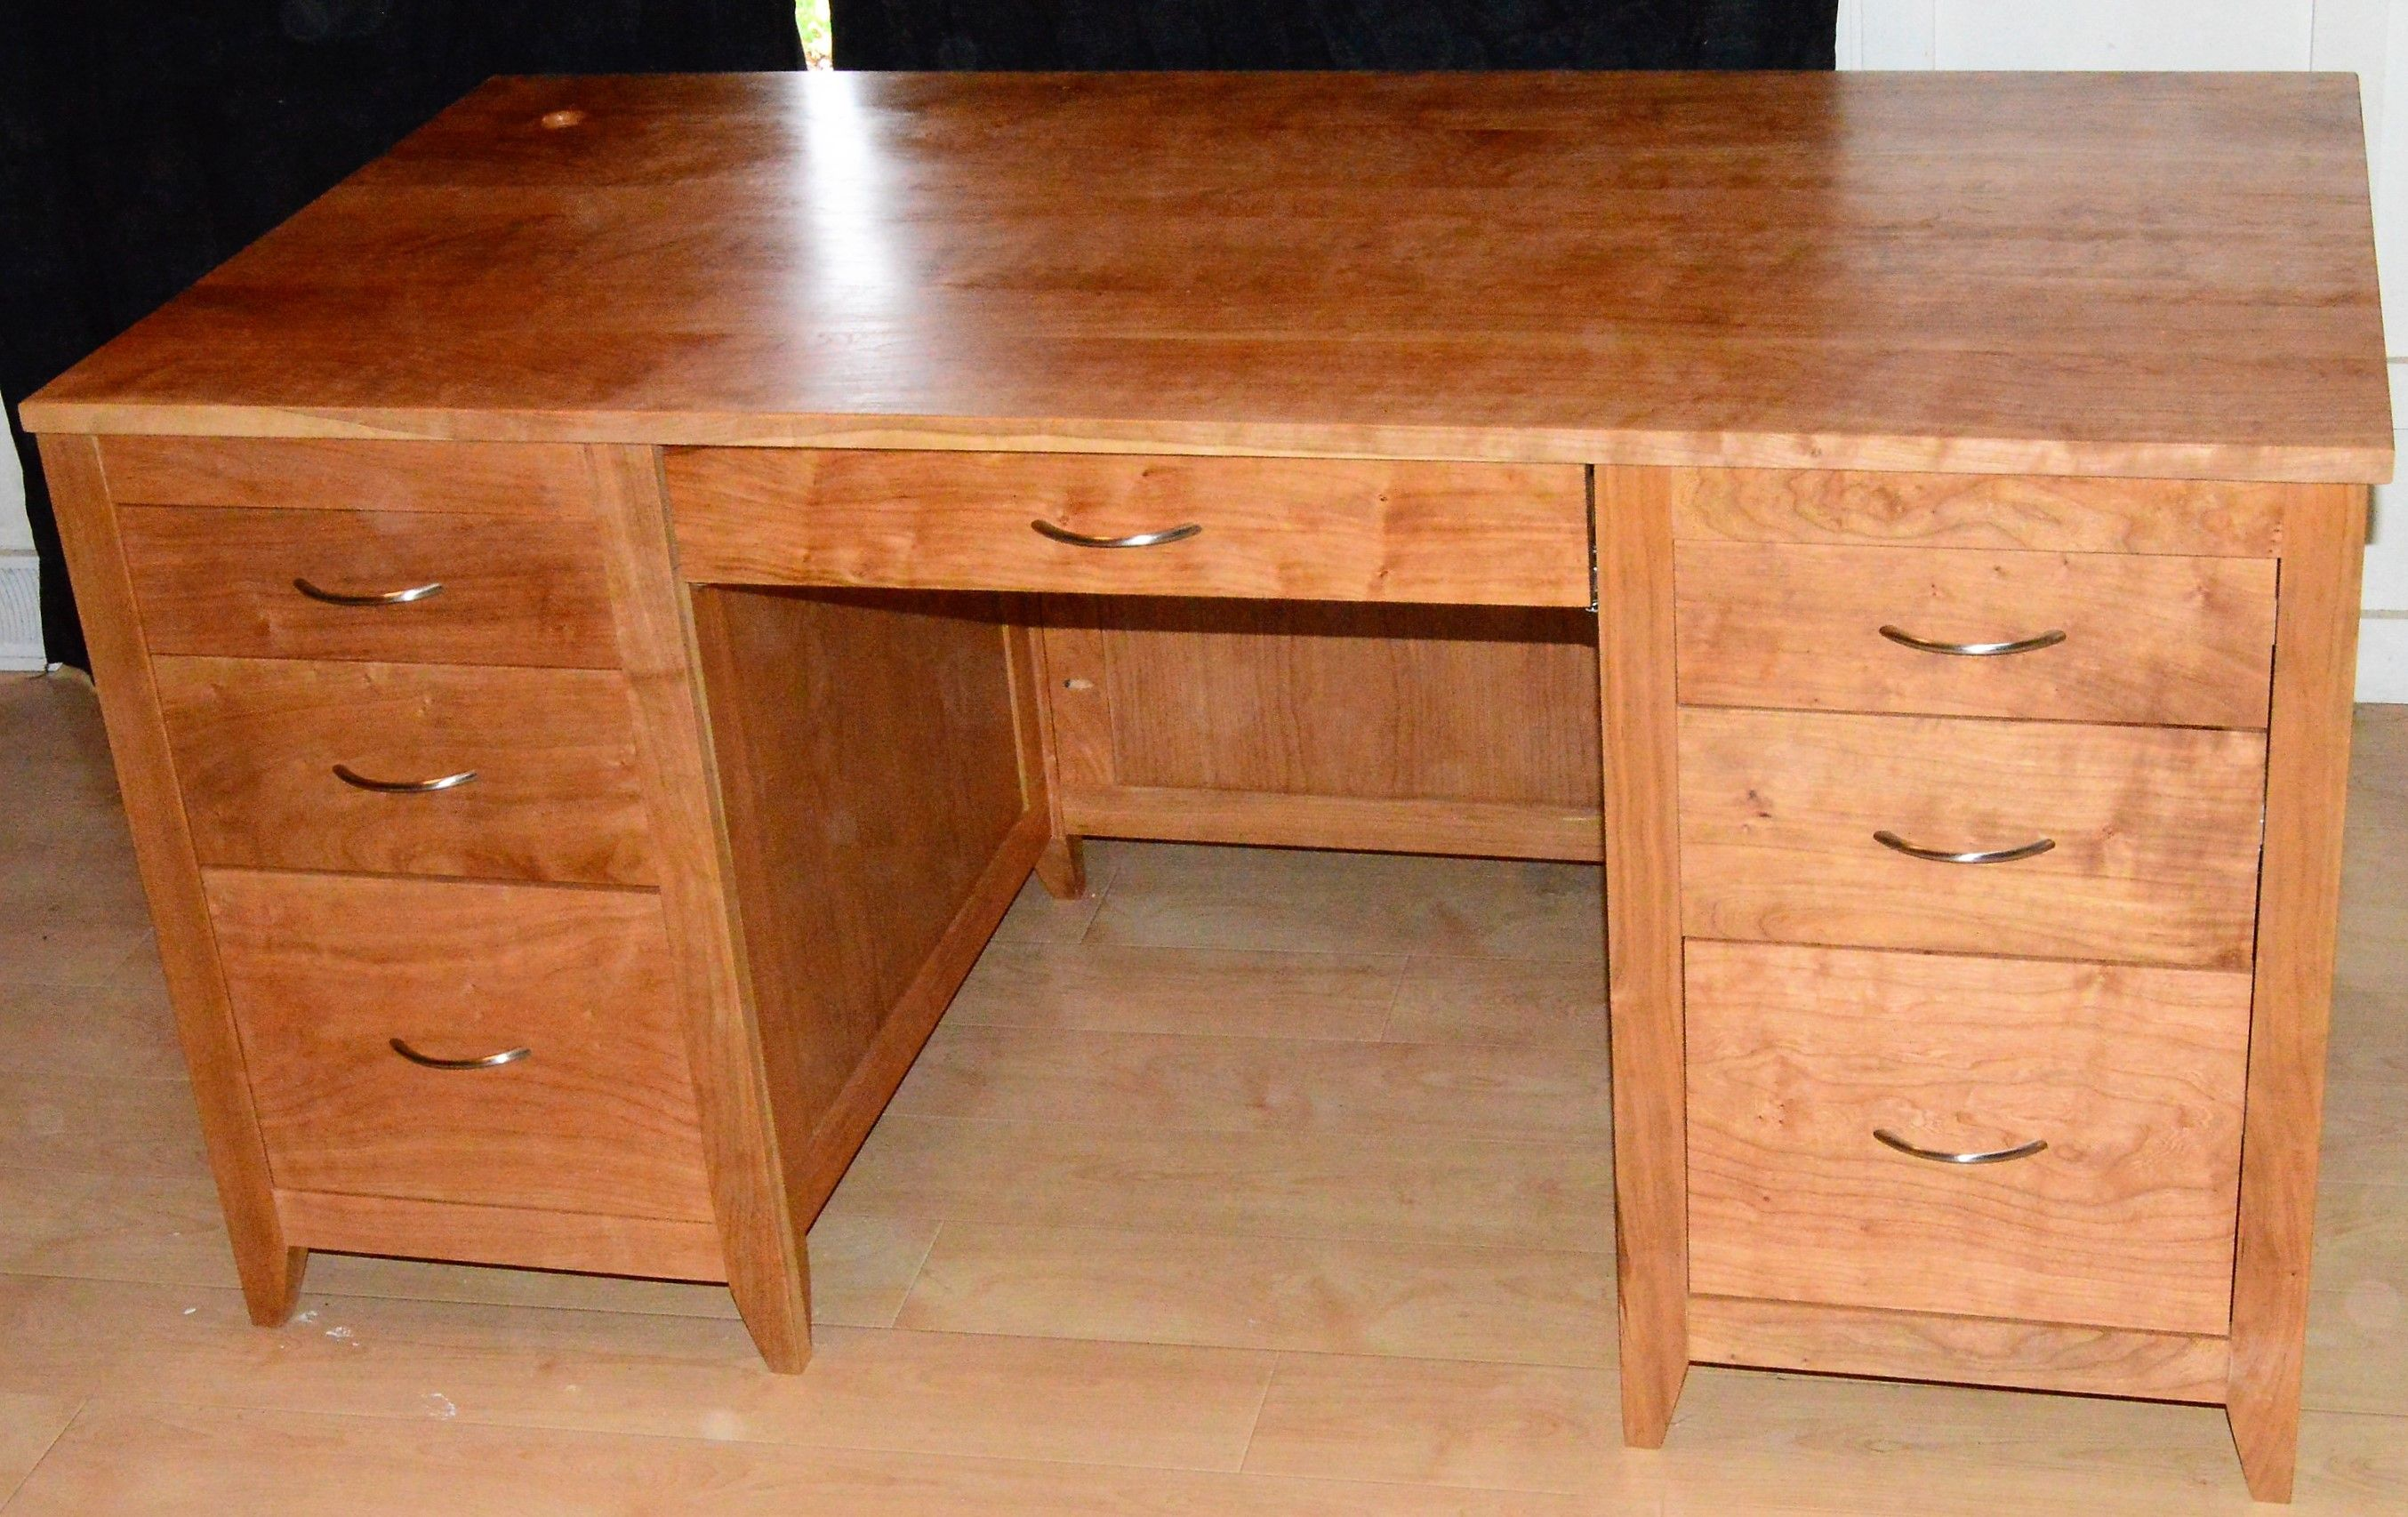 Warm Cherry Executive Desk Home Office Collection: Buy A Handmade Figured Solid Cherry Executive Desk, Made